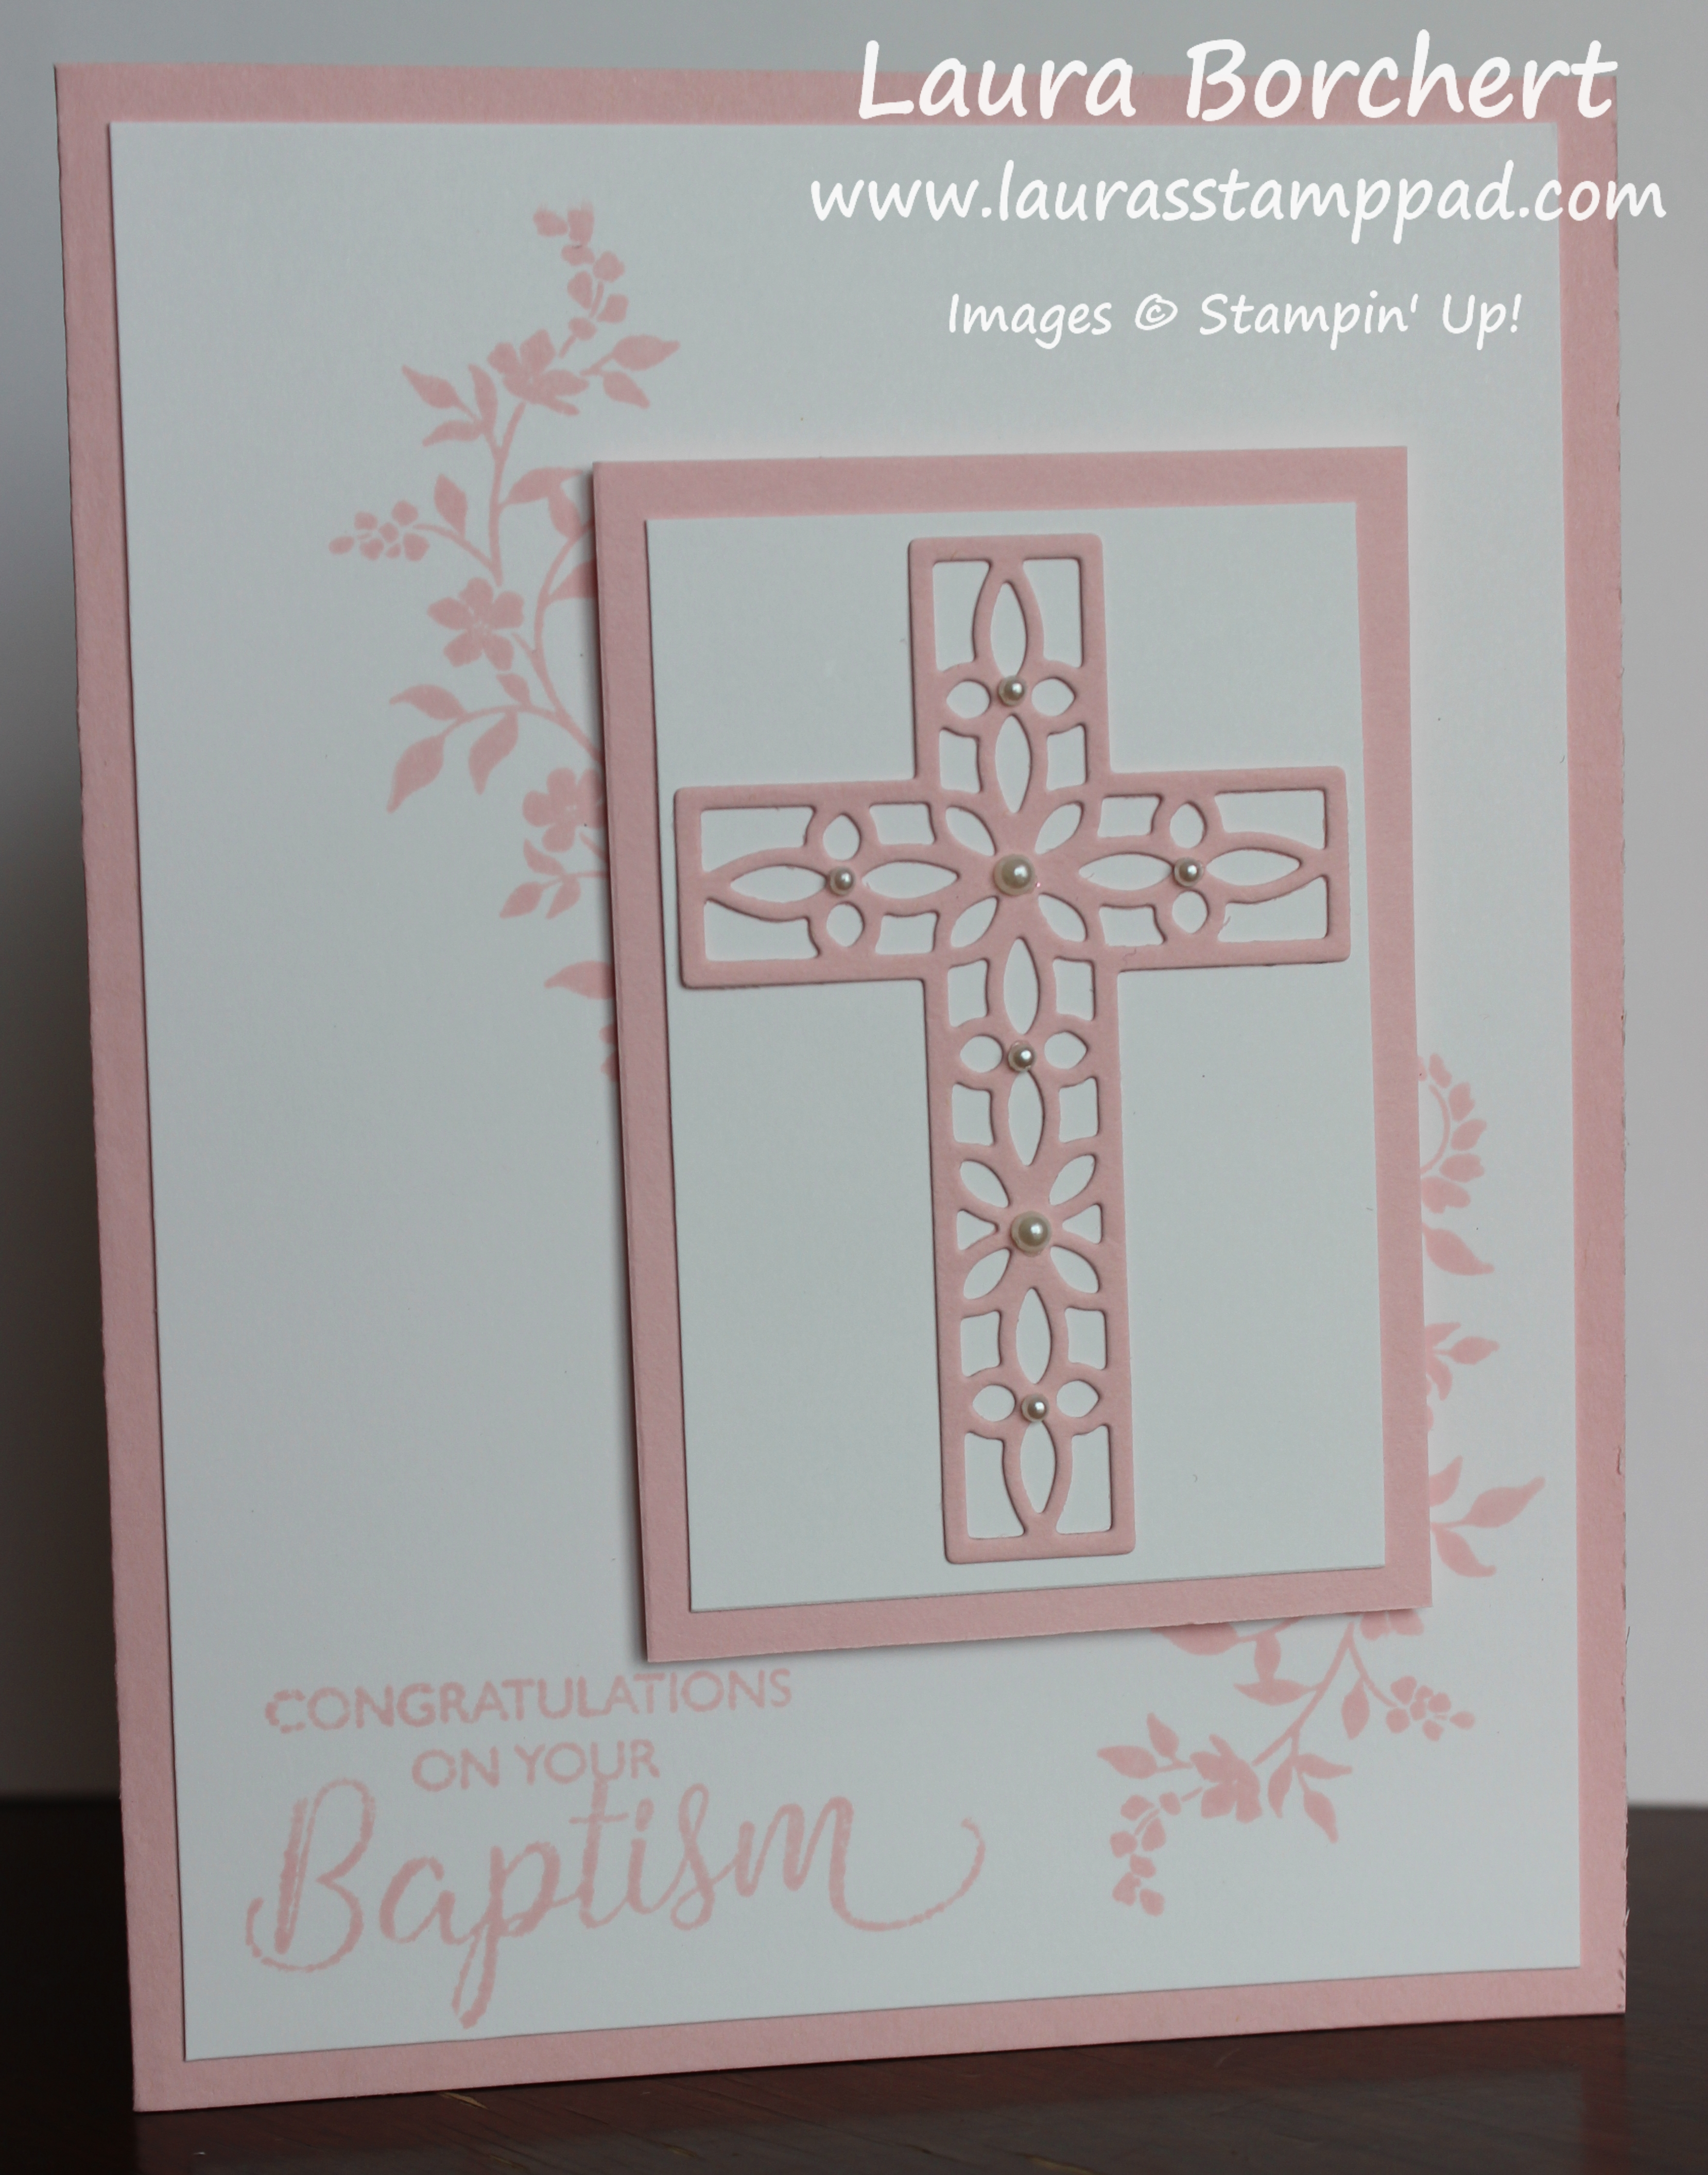 Lauras stamp pad laura borchert independent stampin up baptismal greeting card laurasstamppad kristyandbryce Gallery